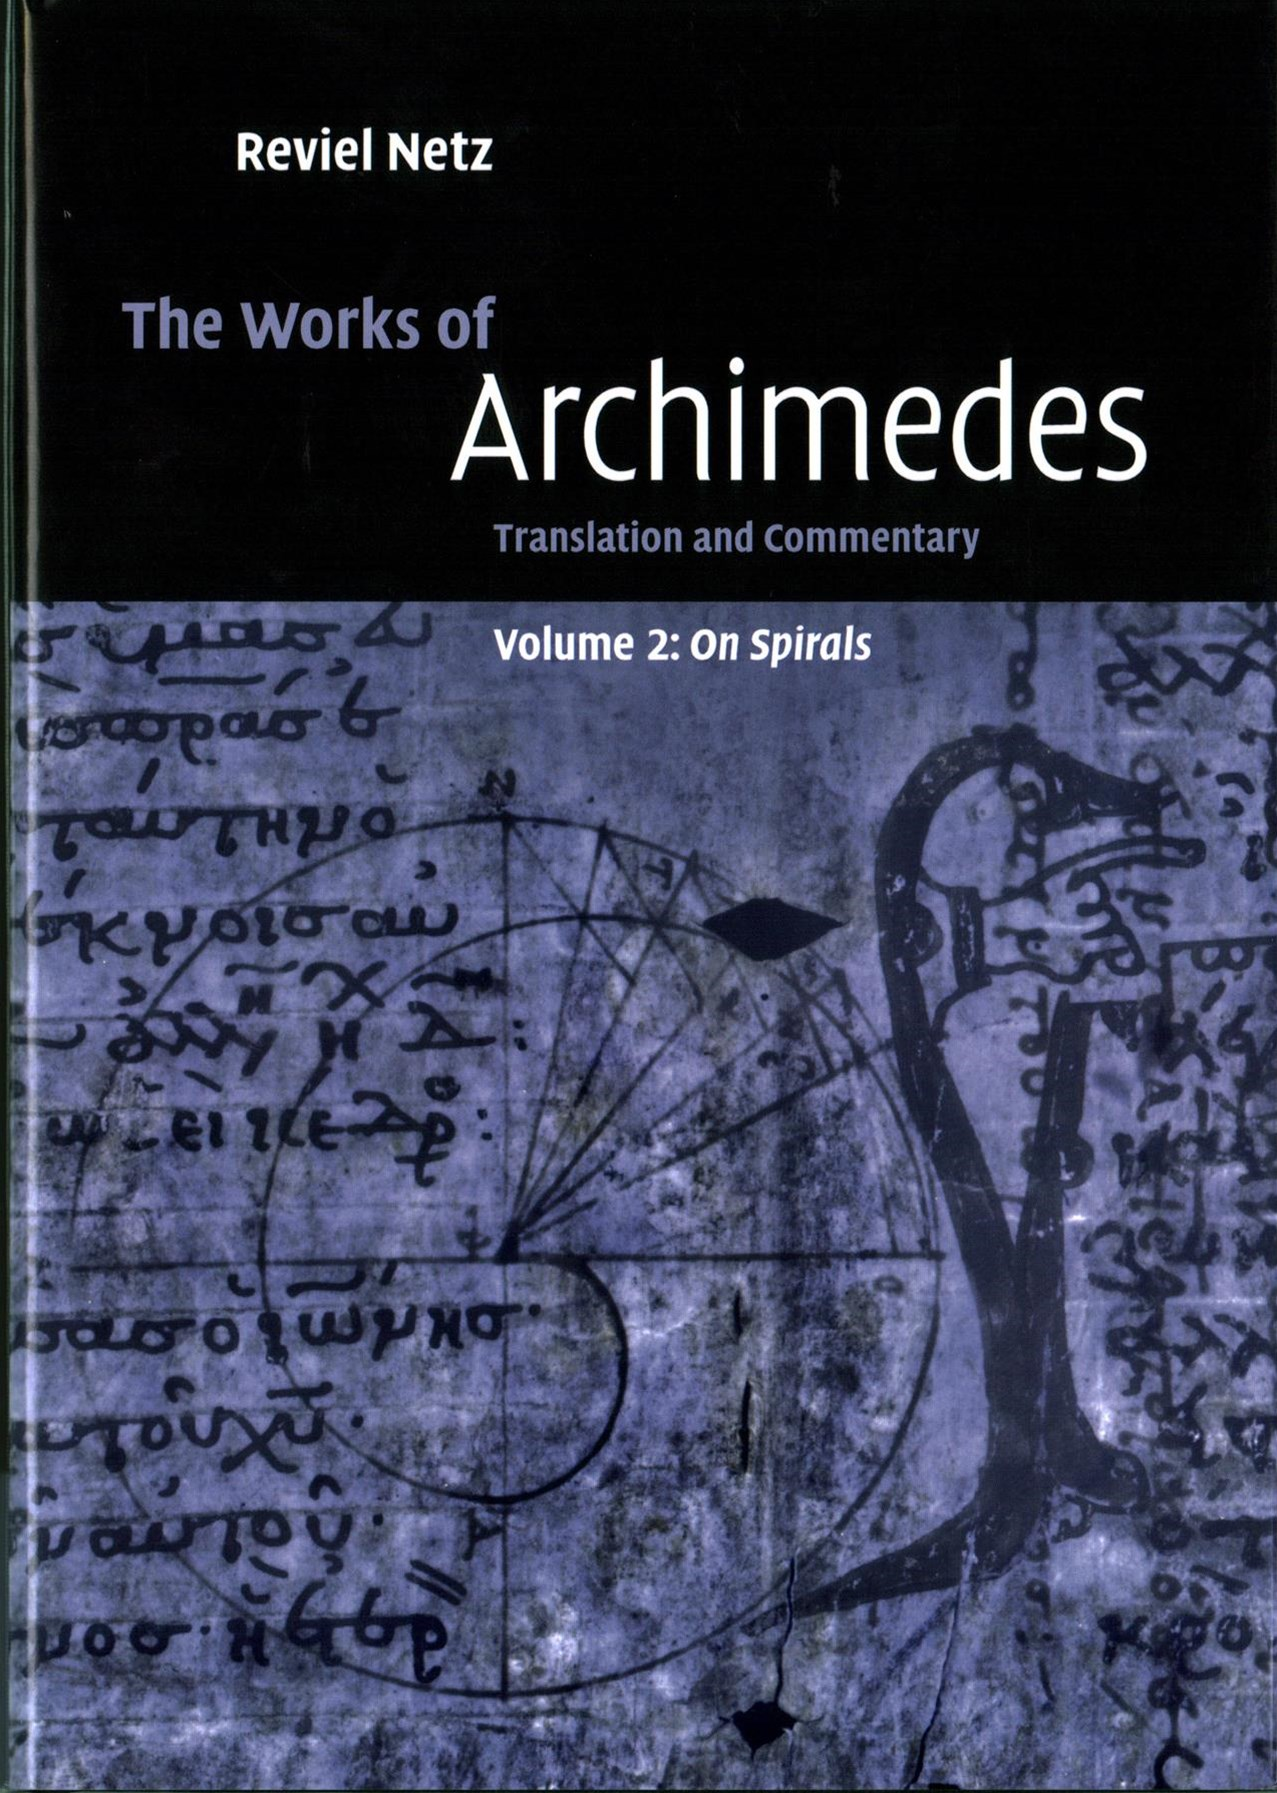 The Works of Archimedes: Volume 2, On Spirals